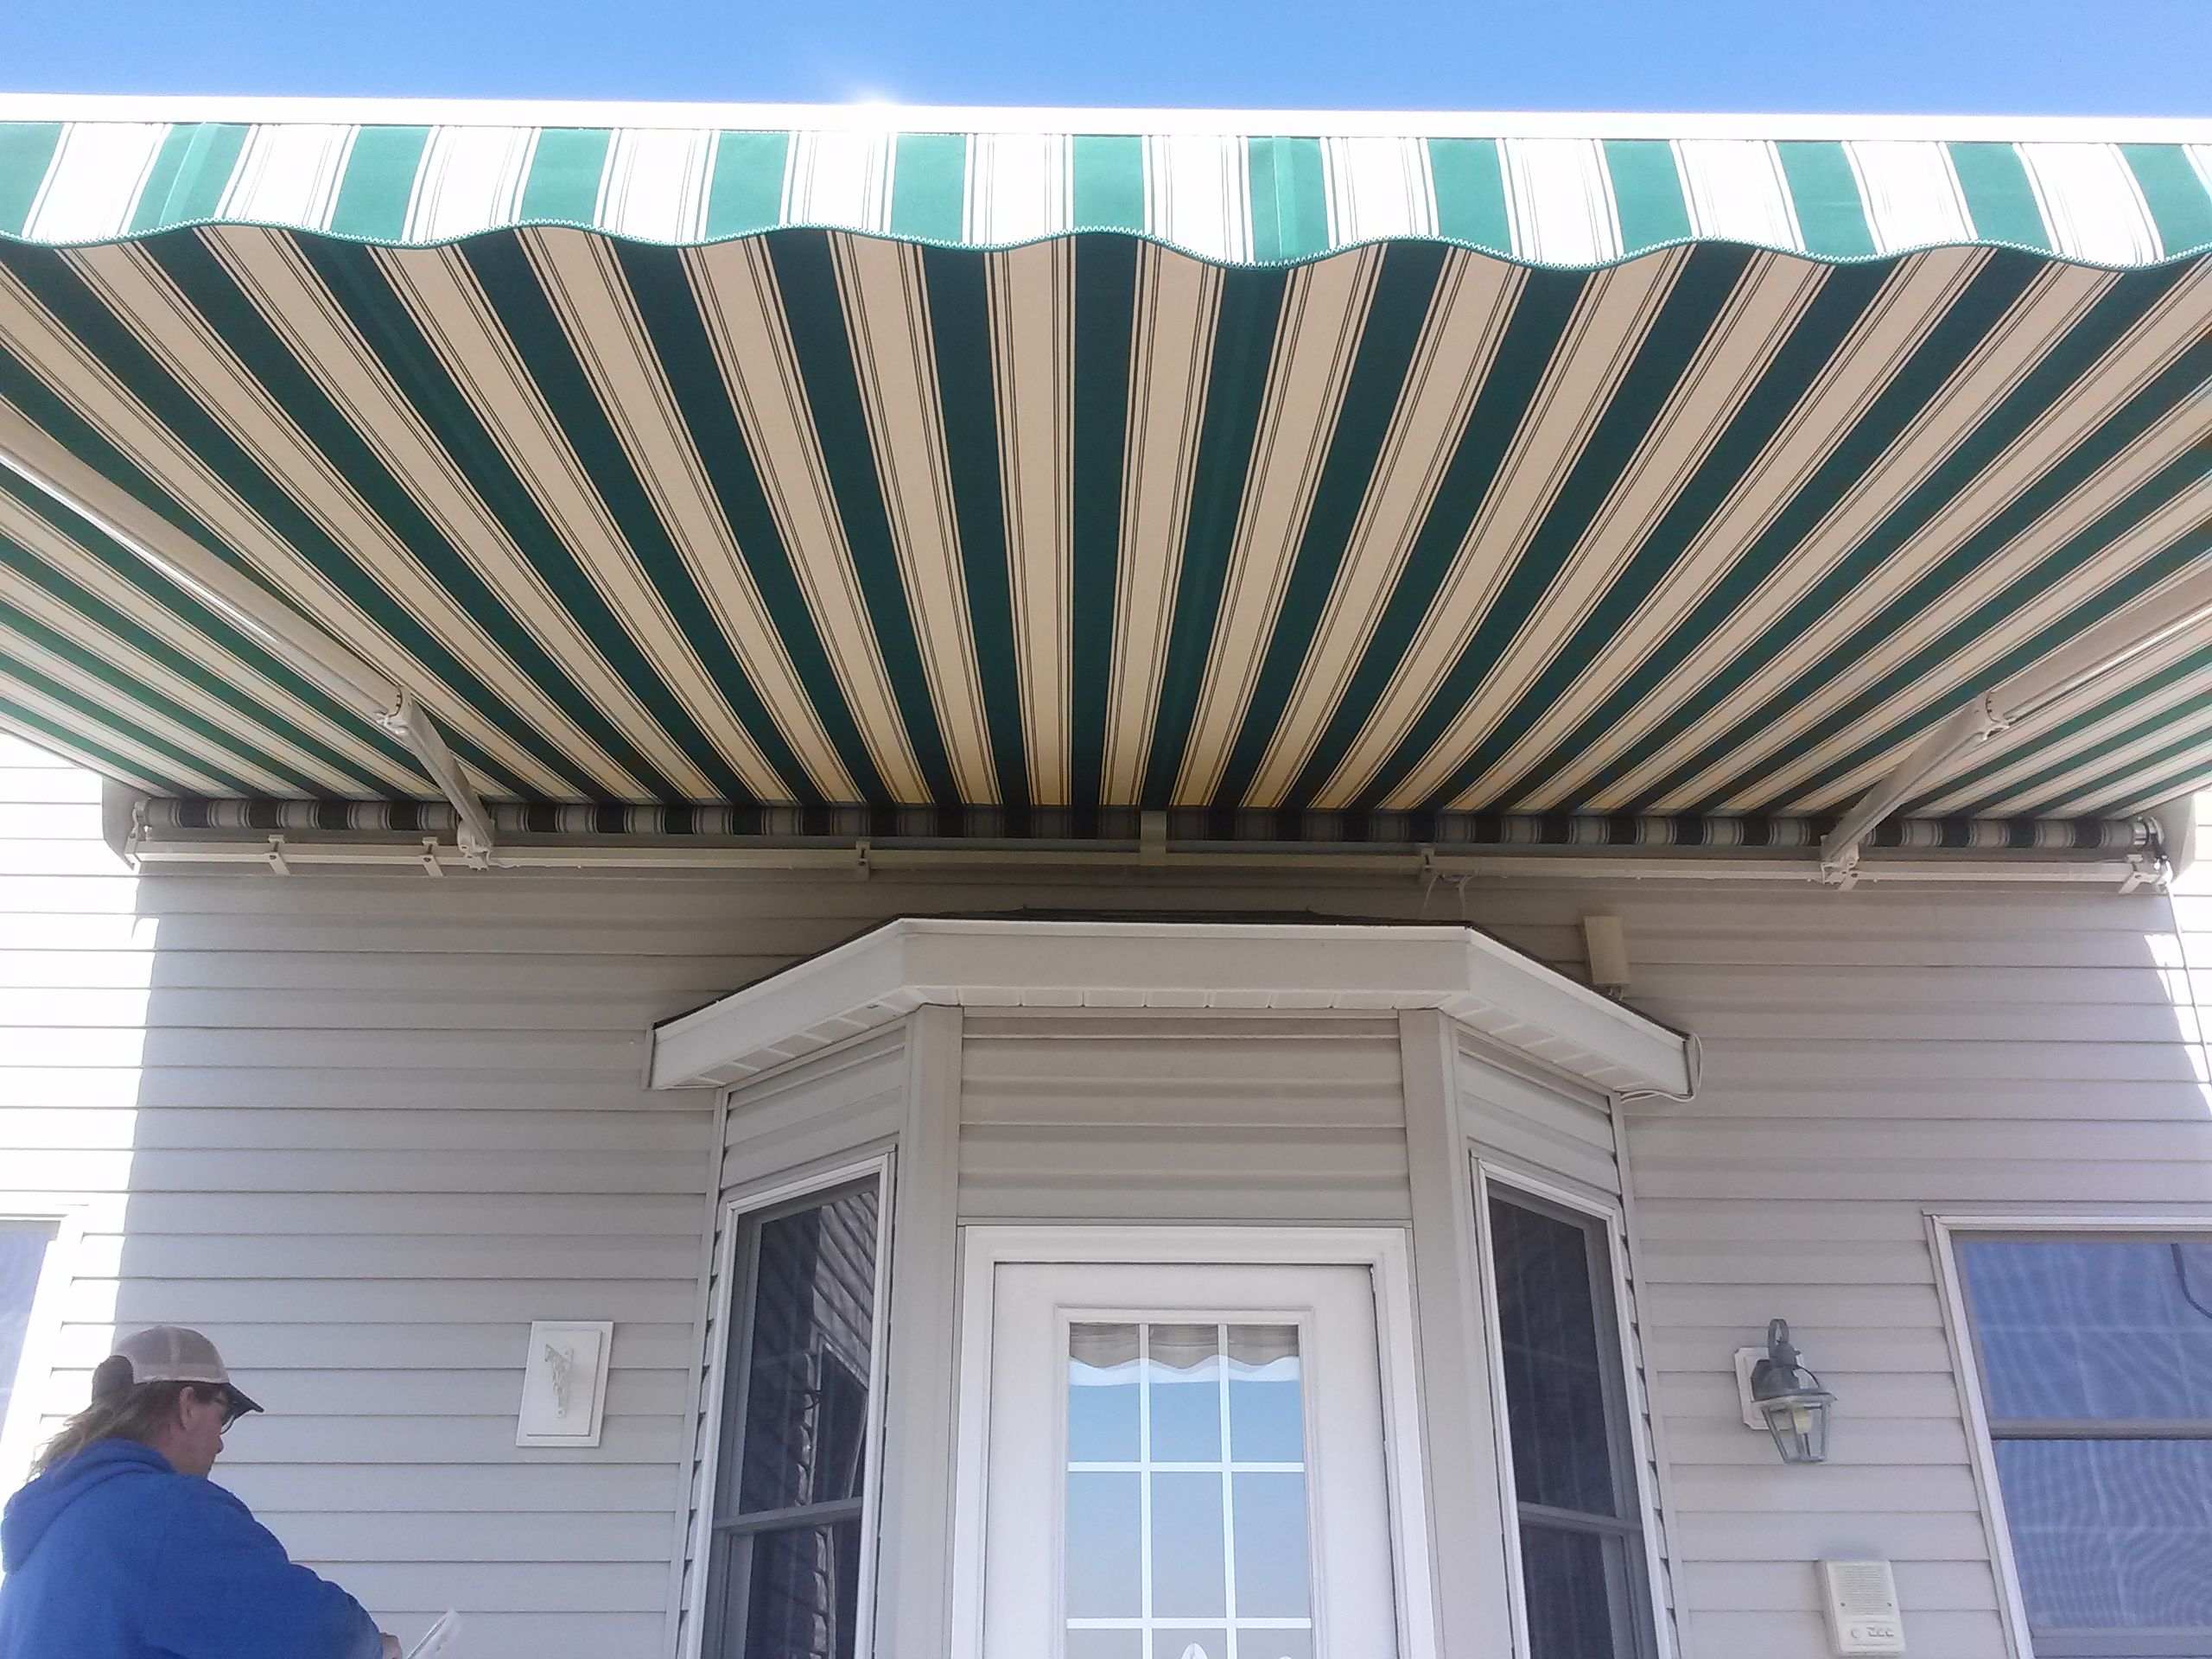 Retractable Awning Over Bay Window Retractable Awnings